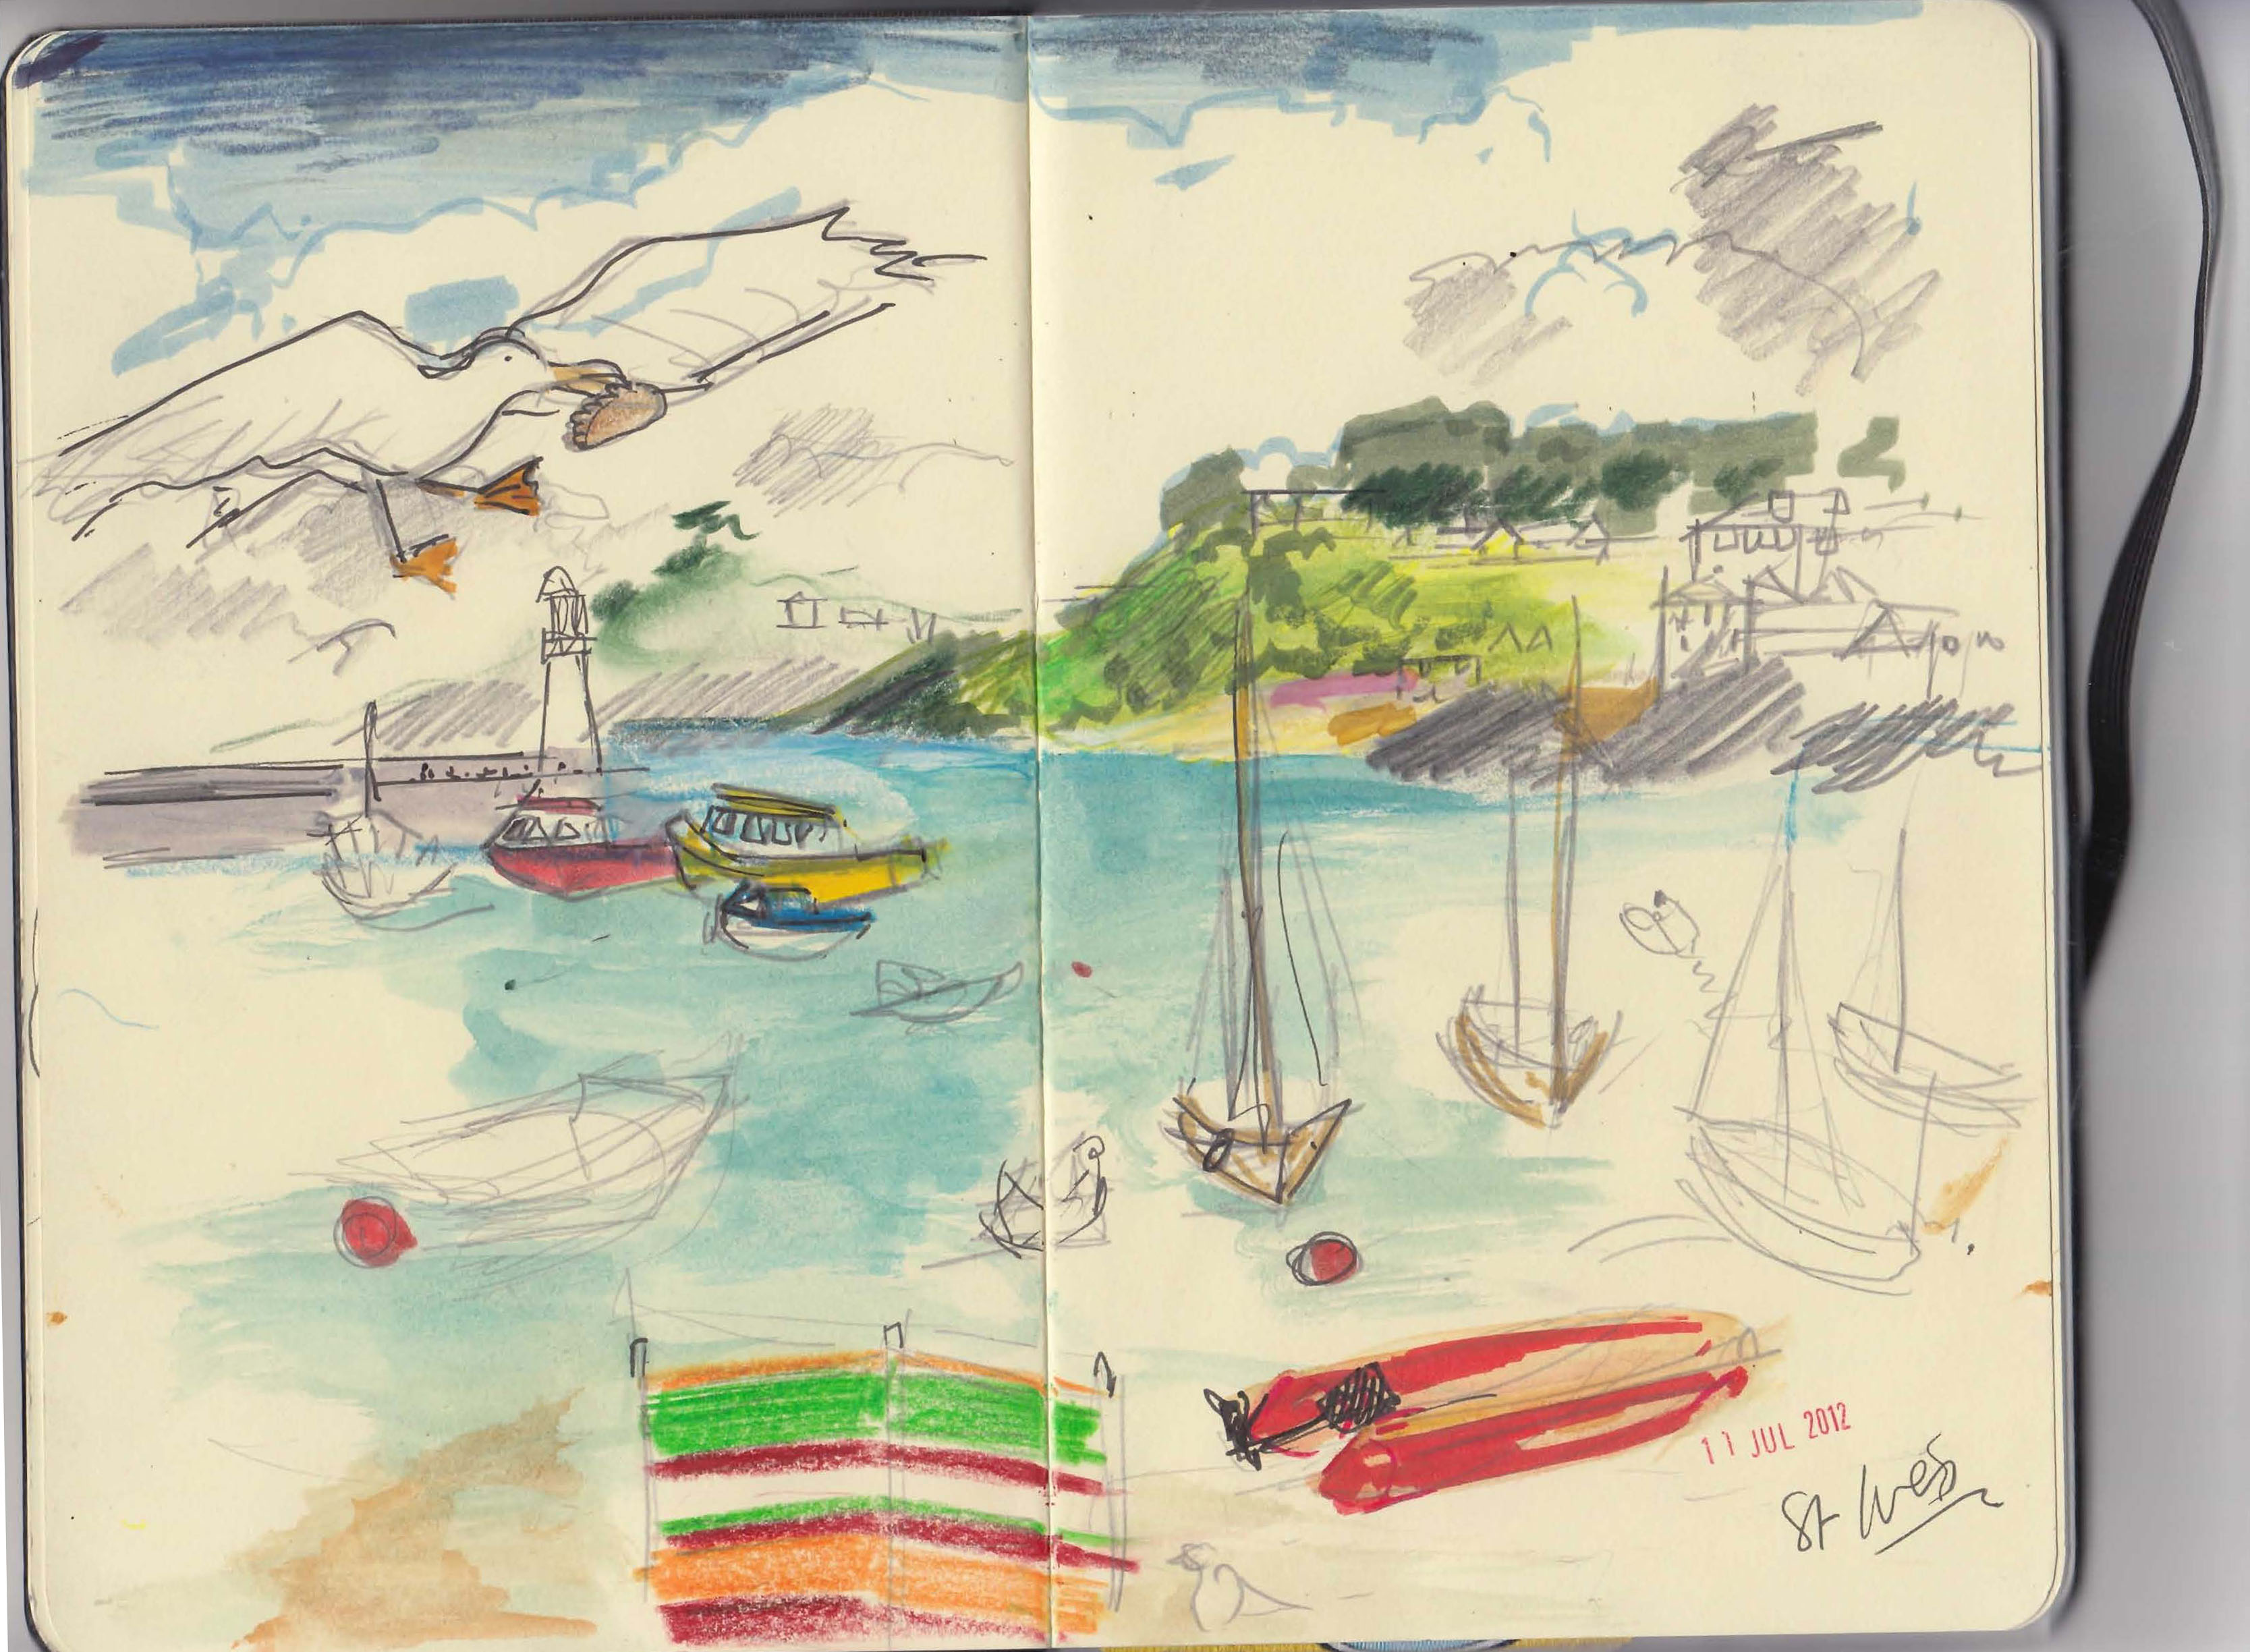 St Ives Harbour sketch